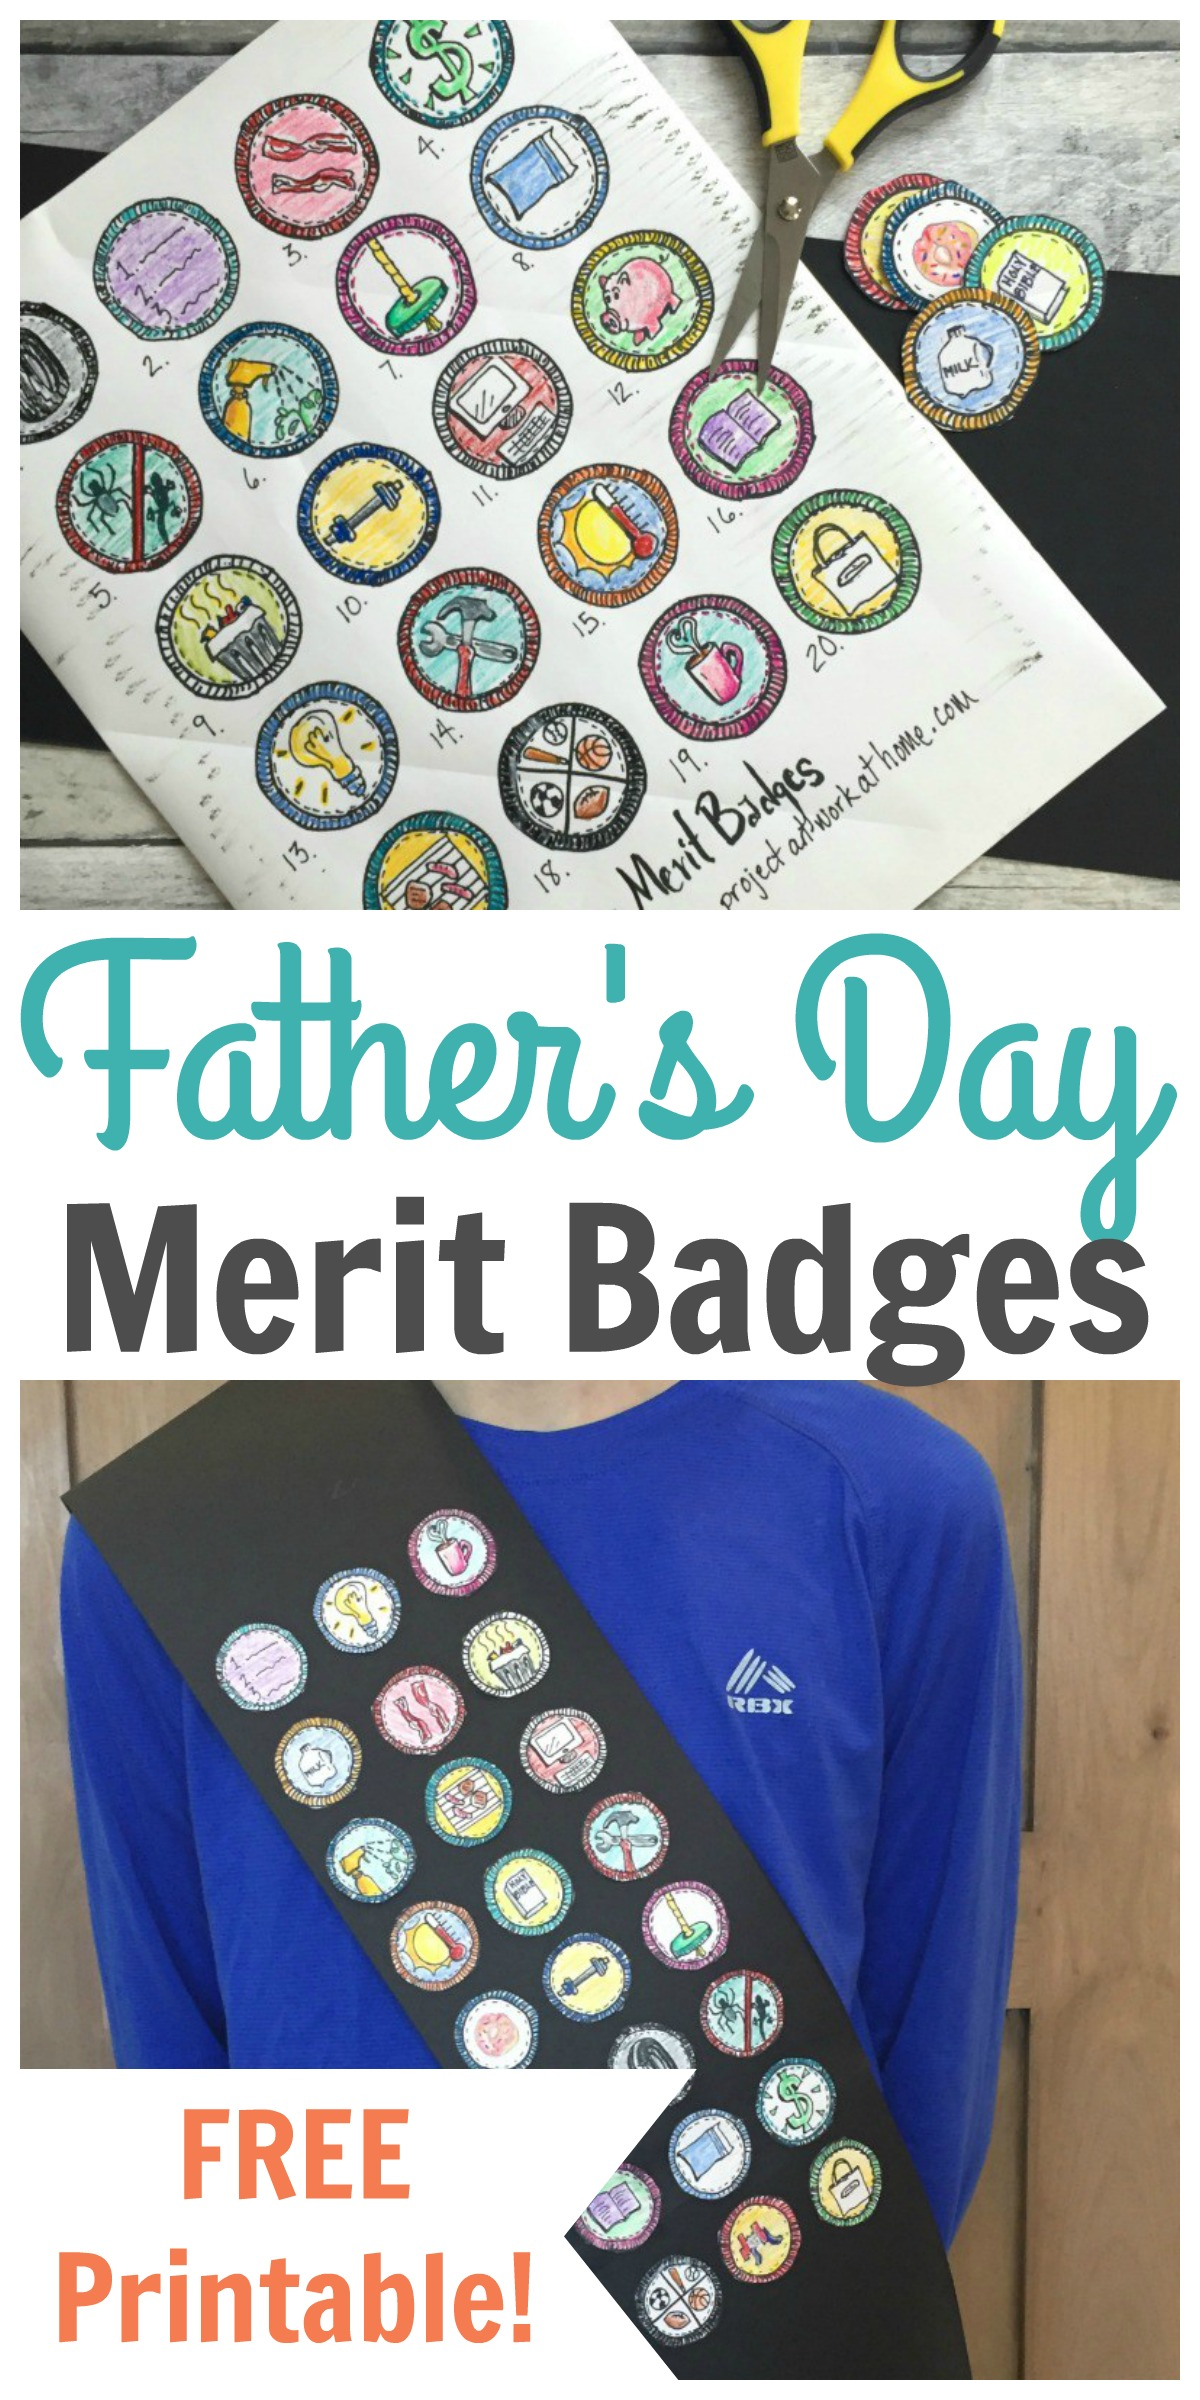 graphic regarding Printable Badges identify Fathers Working day Advantage Badges - Absolutely free Printable! - Pleased Property Fairy